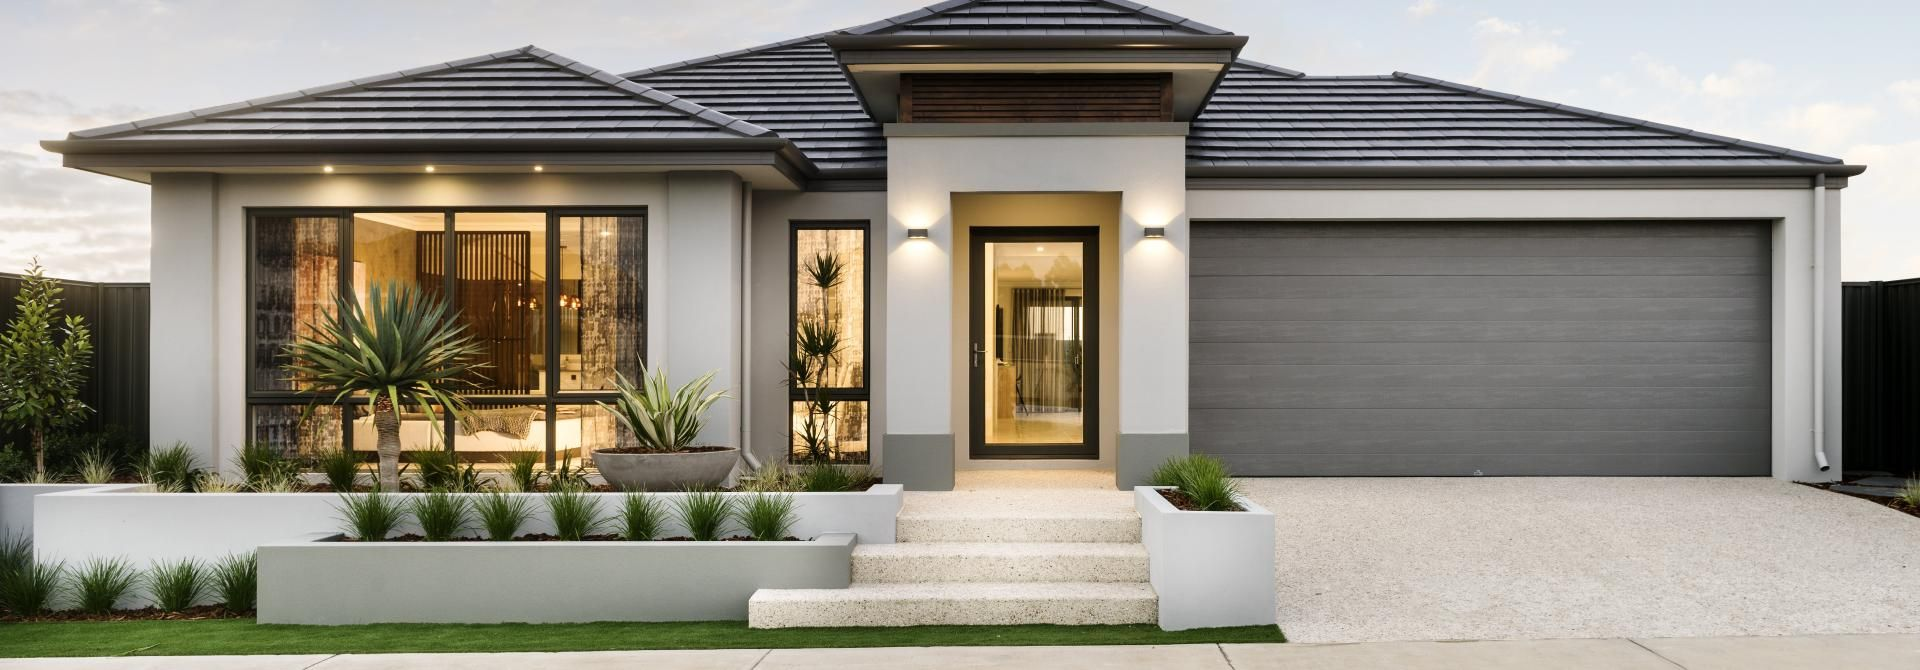 Affinity I Dale Alcock Homes Dream House In 2019